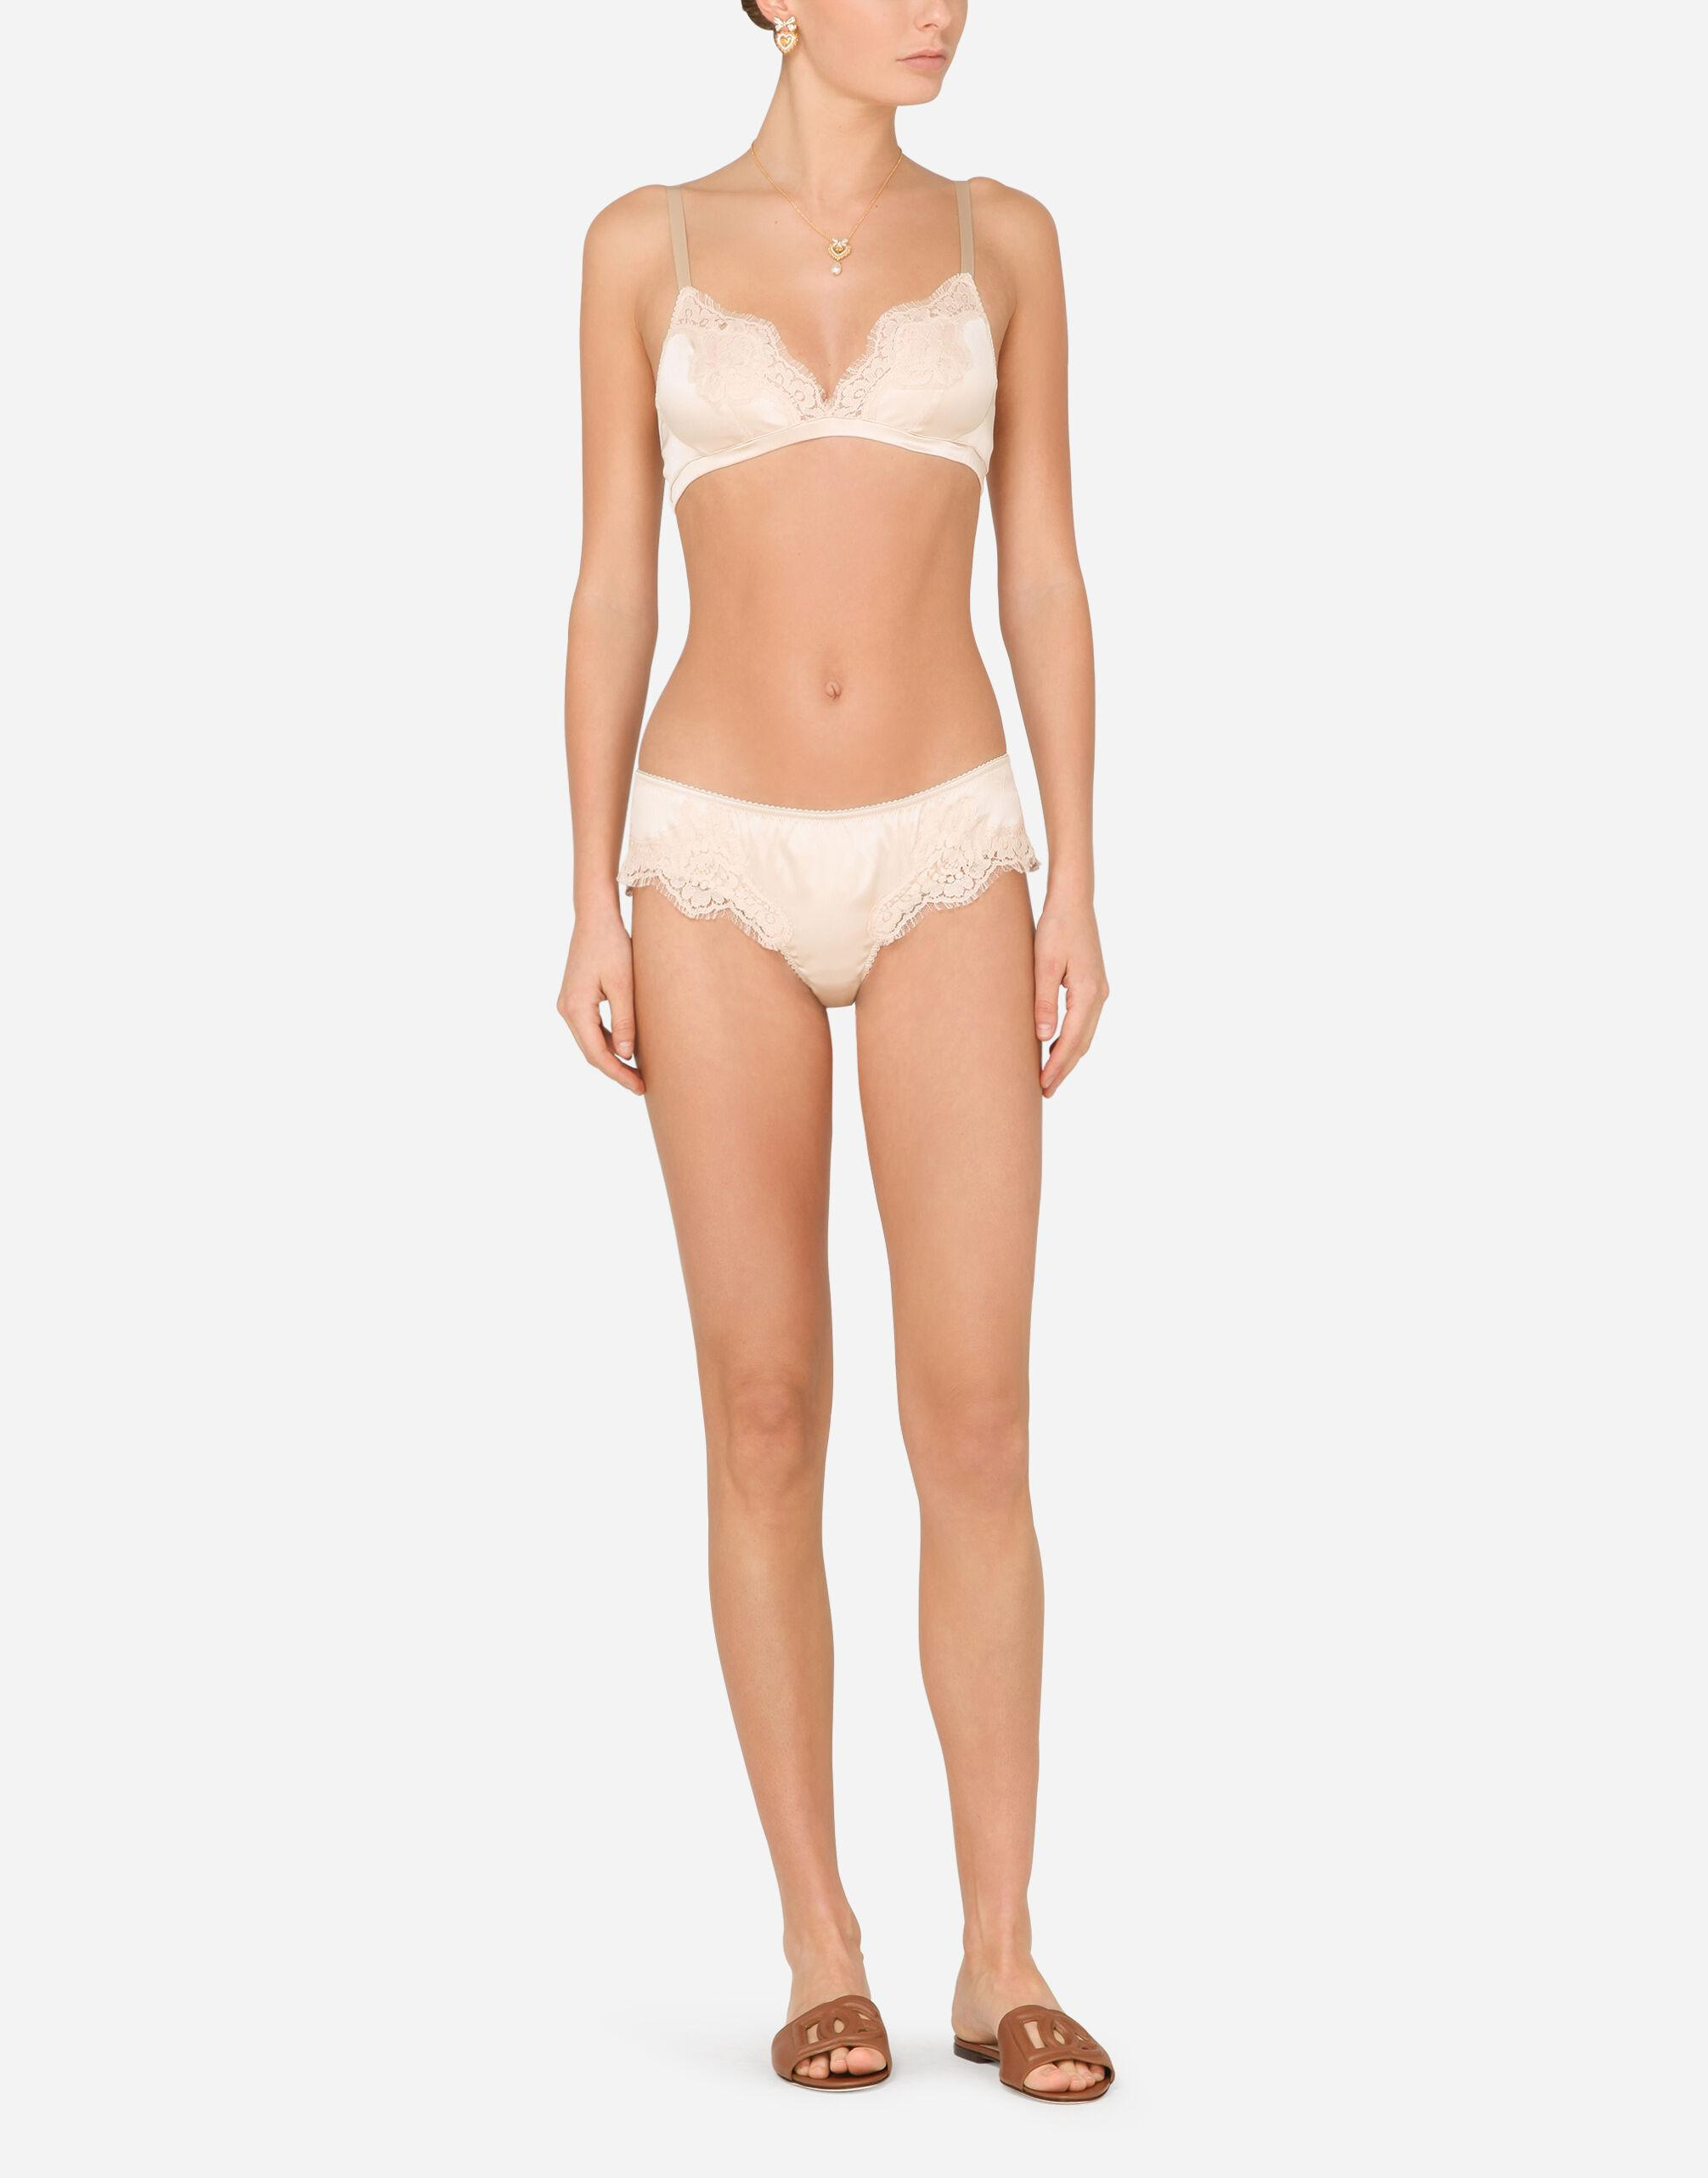 Soft-cup satin bra with lace detailing